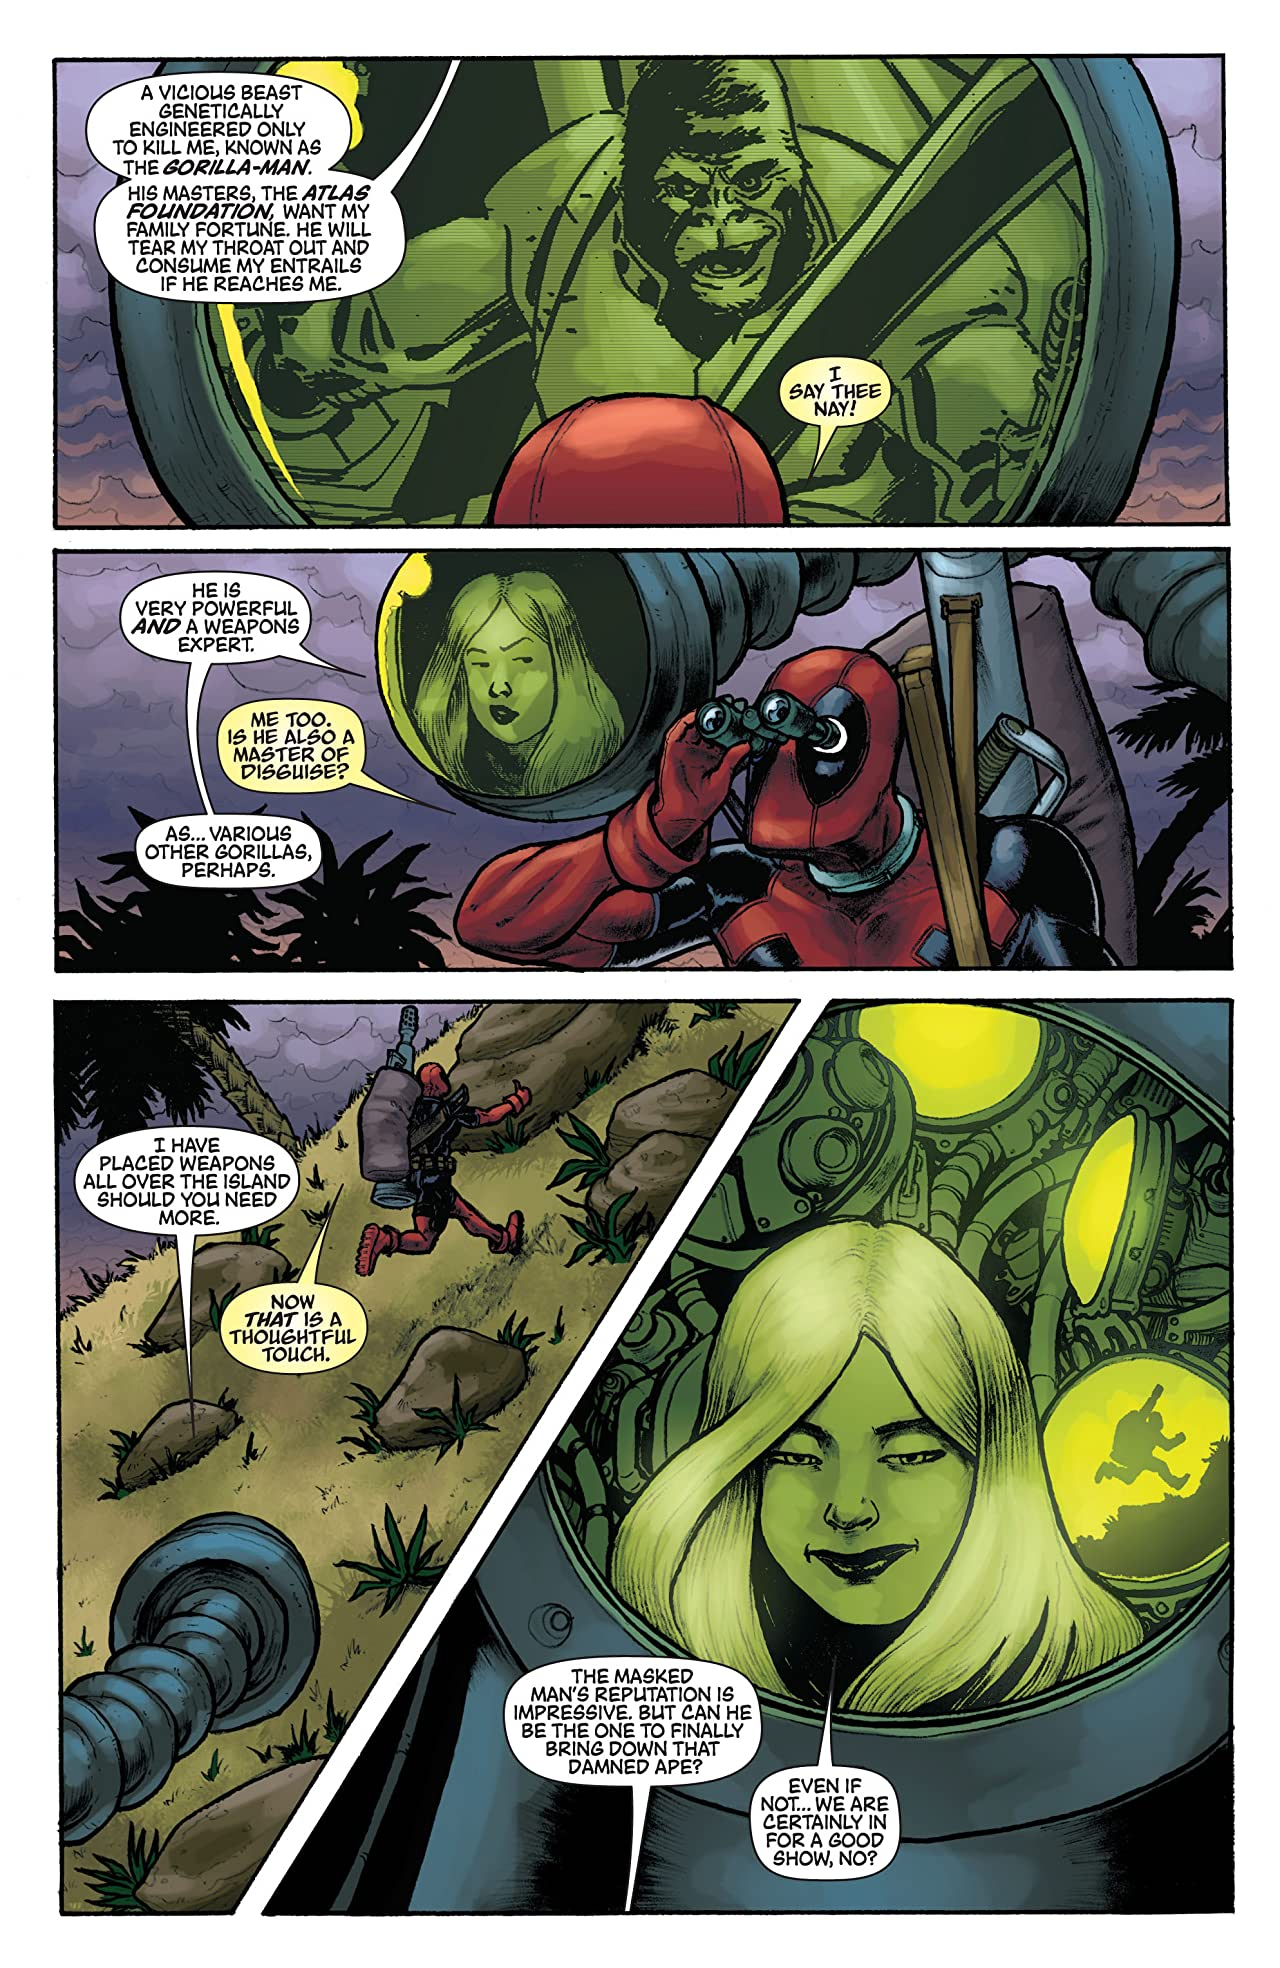 Deadpool Team-Up #889